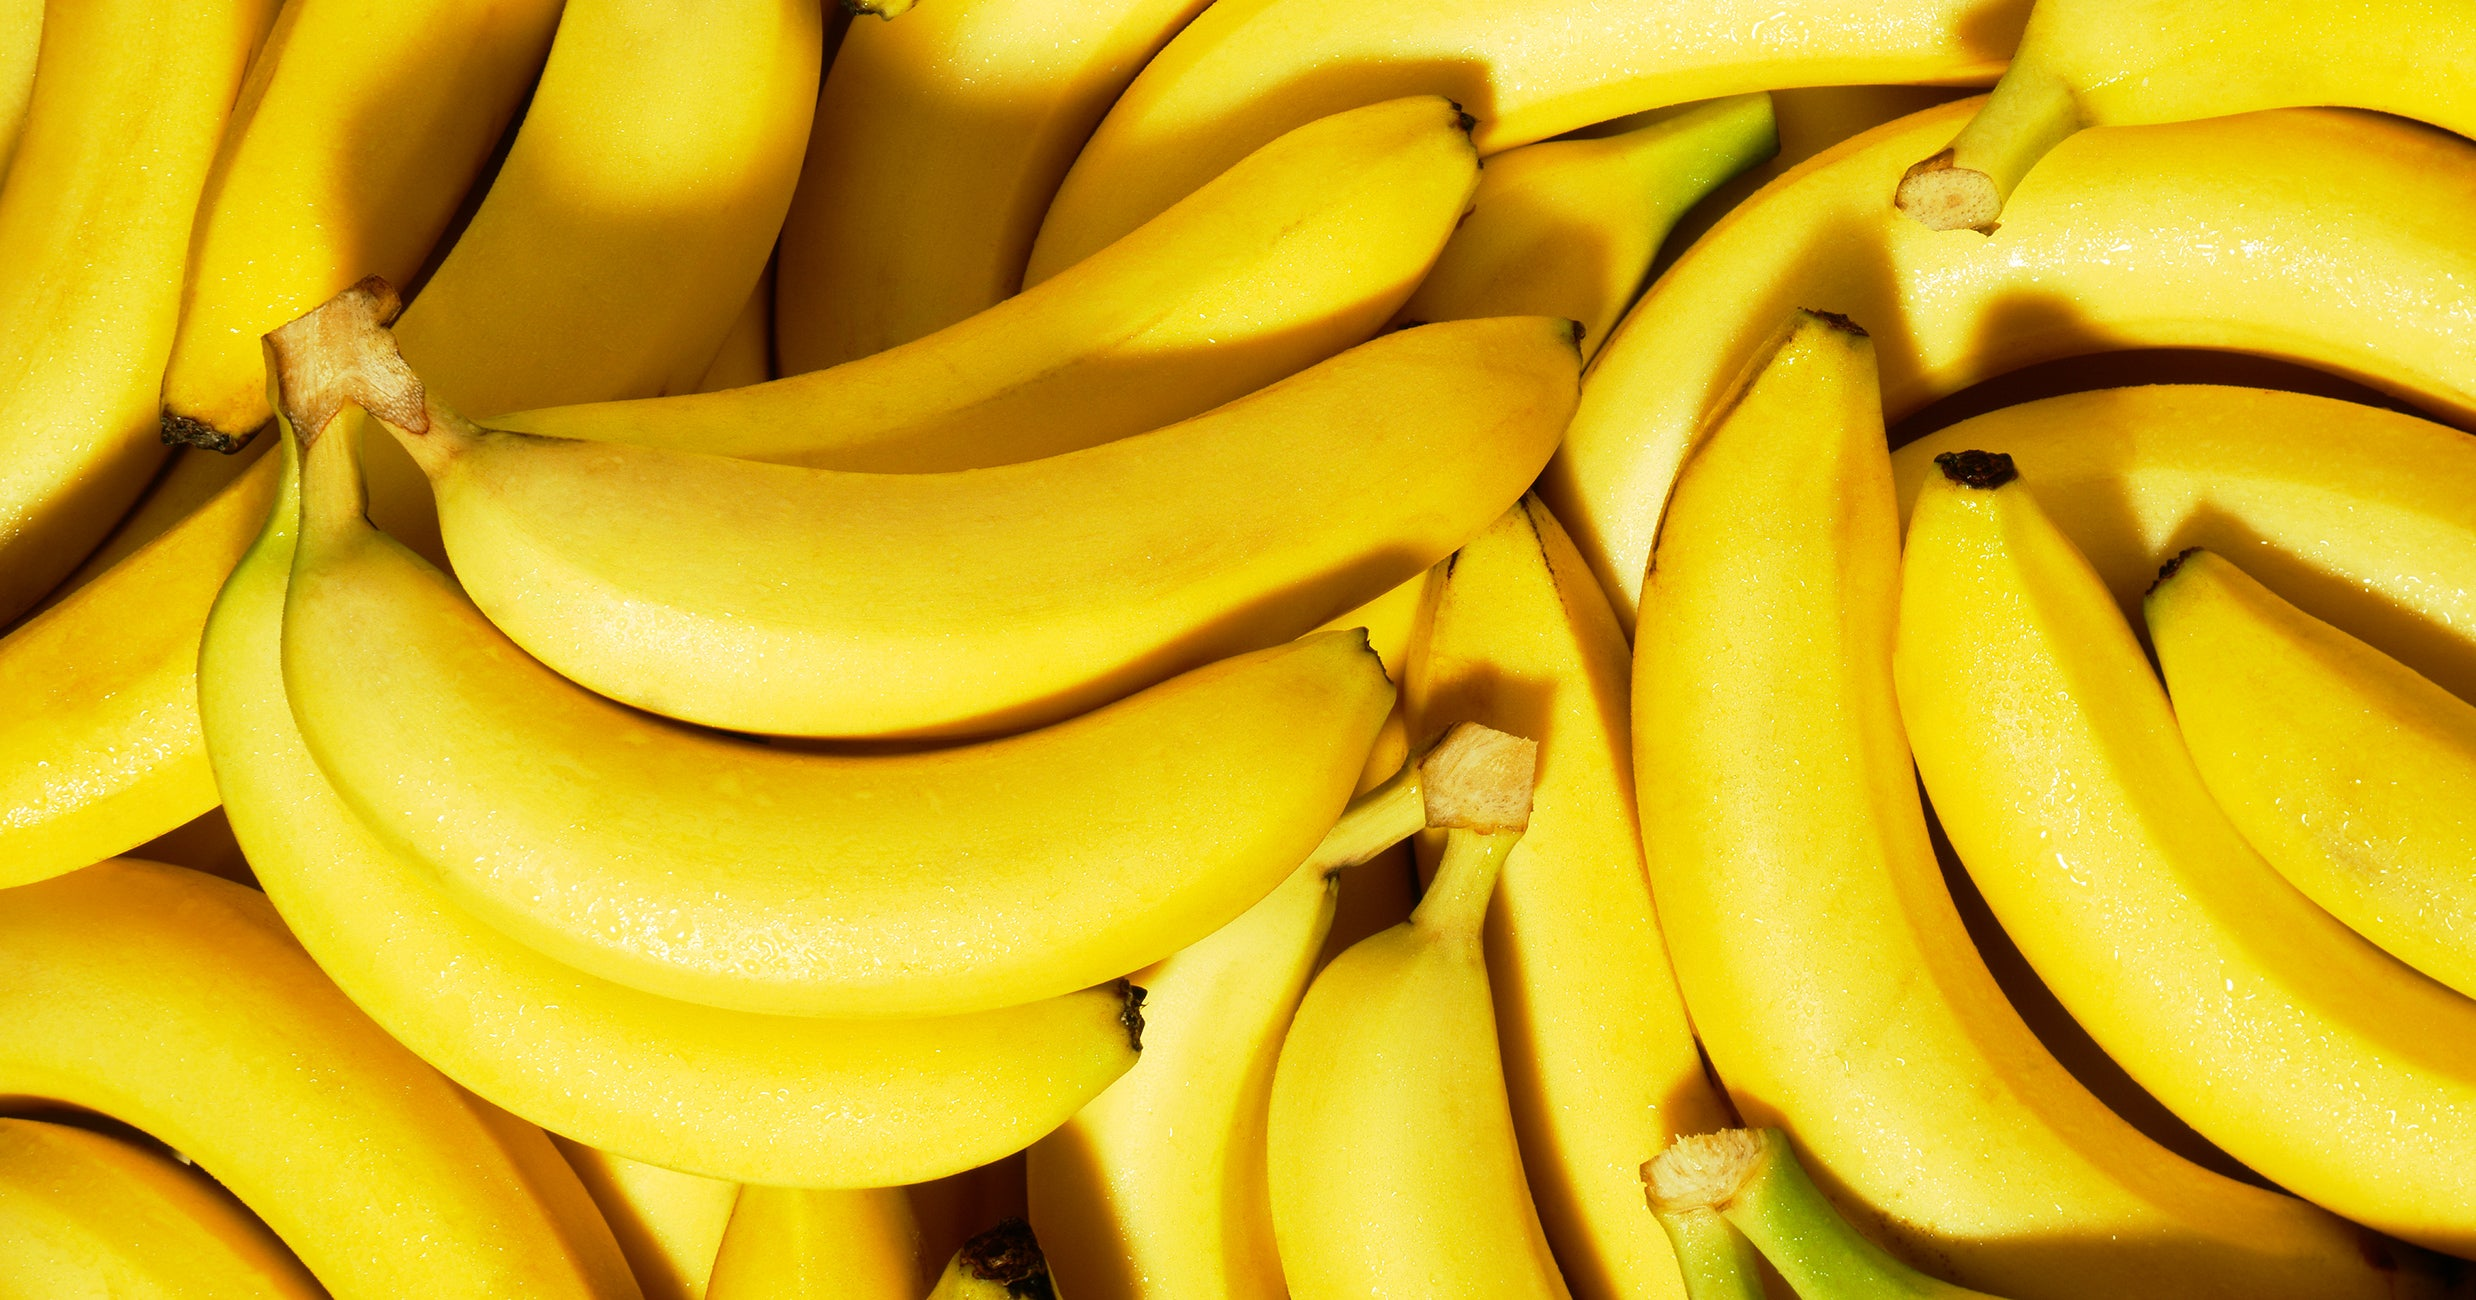 www.refinery29.com: What Is The Right Way To Eat A Banana? A Very Serious Investigation